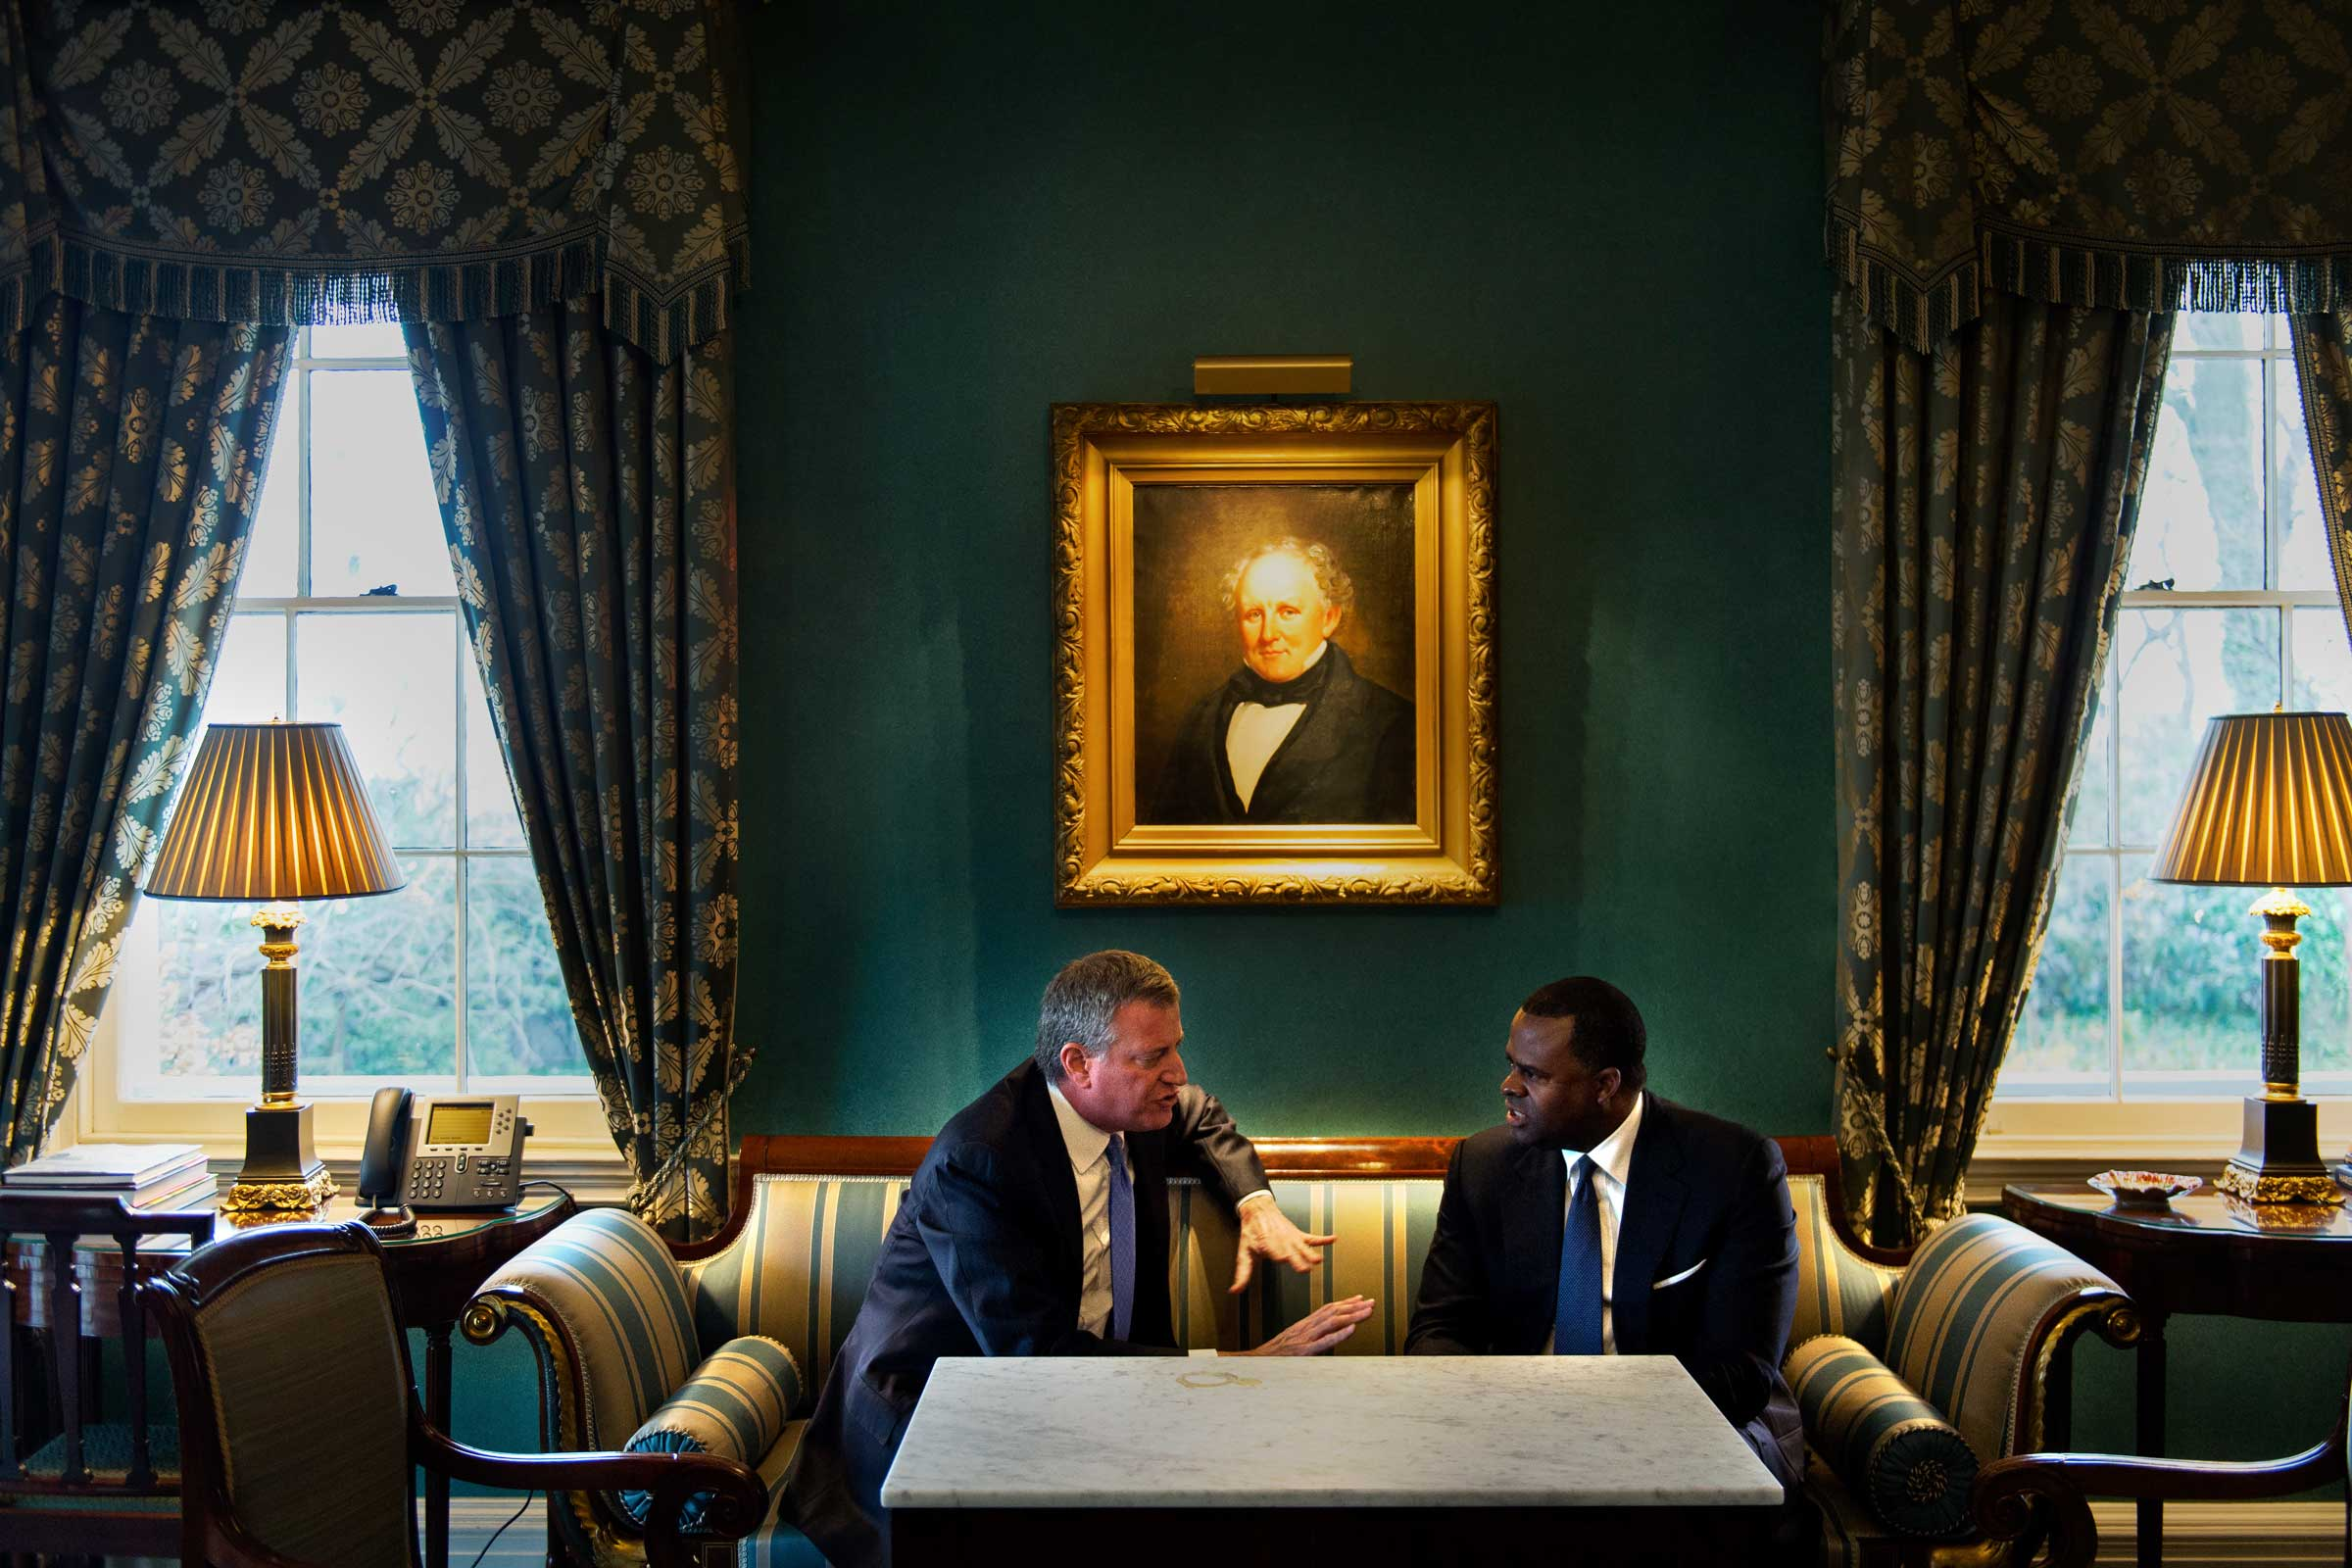 Meeting in the Green room with Atlanta Mayor Kasim Reed. Gracie Mansion, New York.